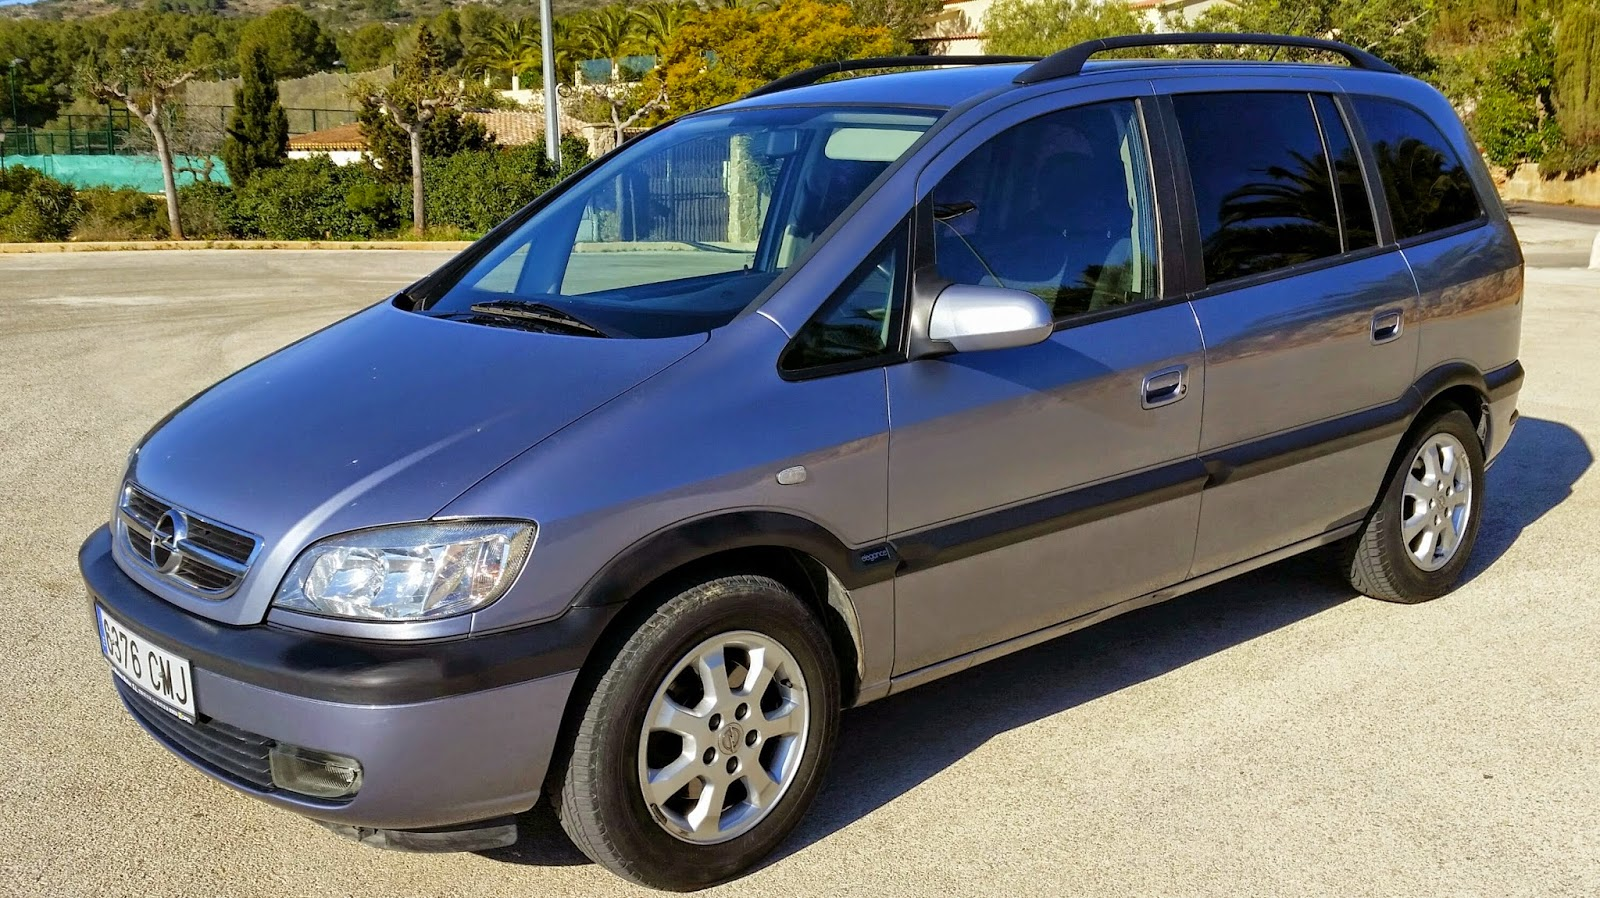 lhd autos now sold opel zafira 7 seater diesel automatic 2002 full service history only. Black Bedroom Furniture Sets. Home Design Ideas